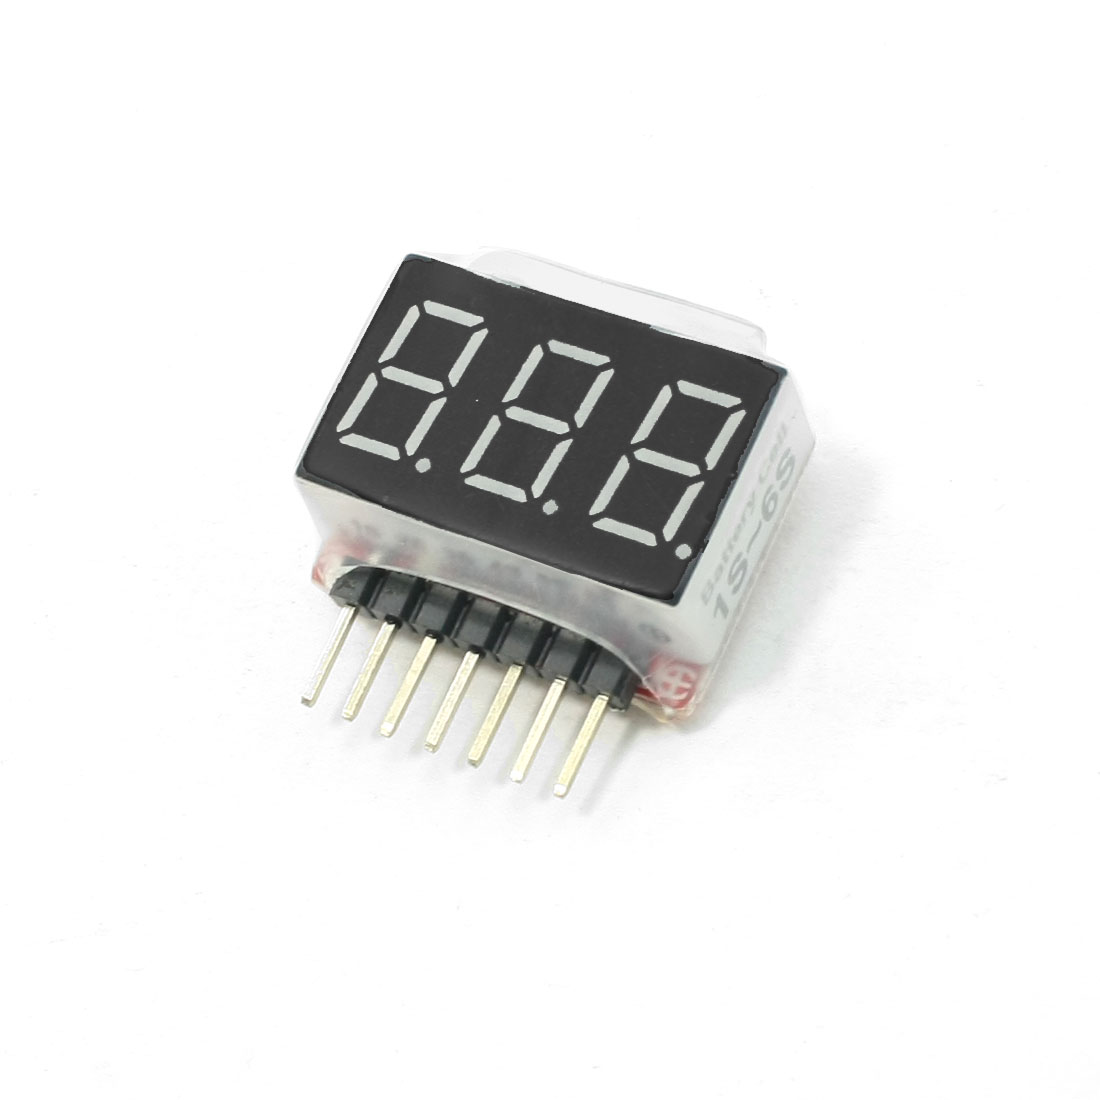 BVM-6S LCD Display 7 Pin Battery Voltage Meter for RC Control Model